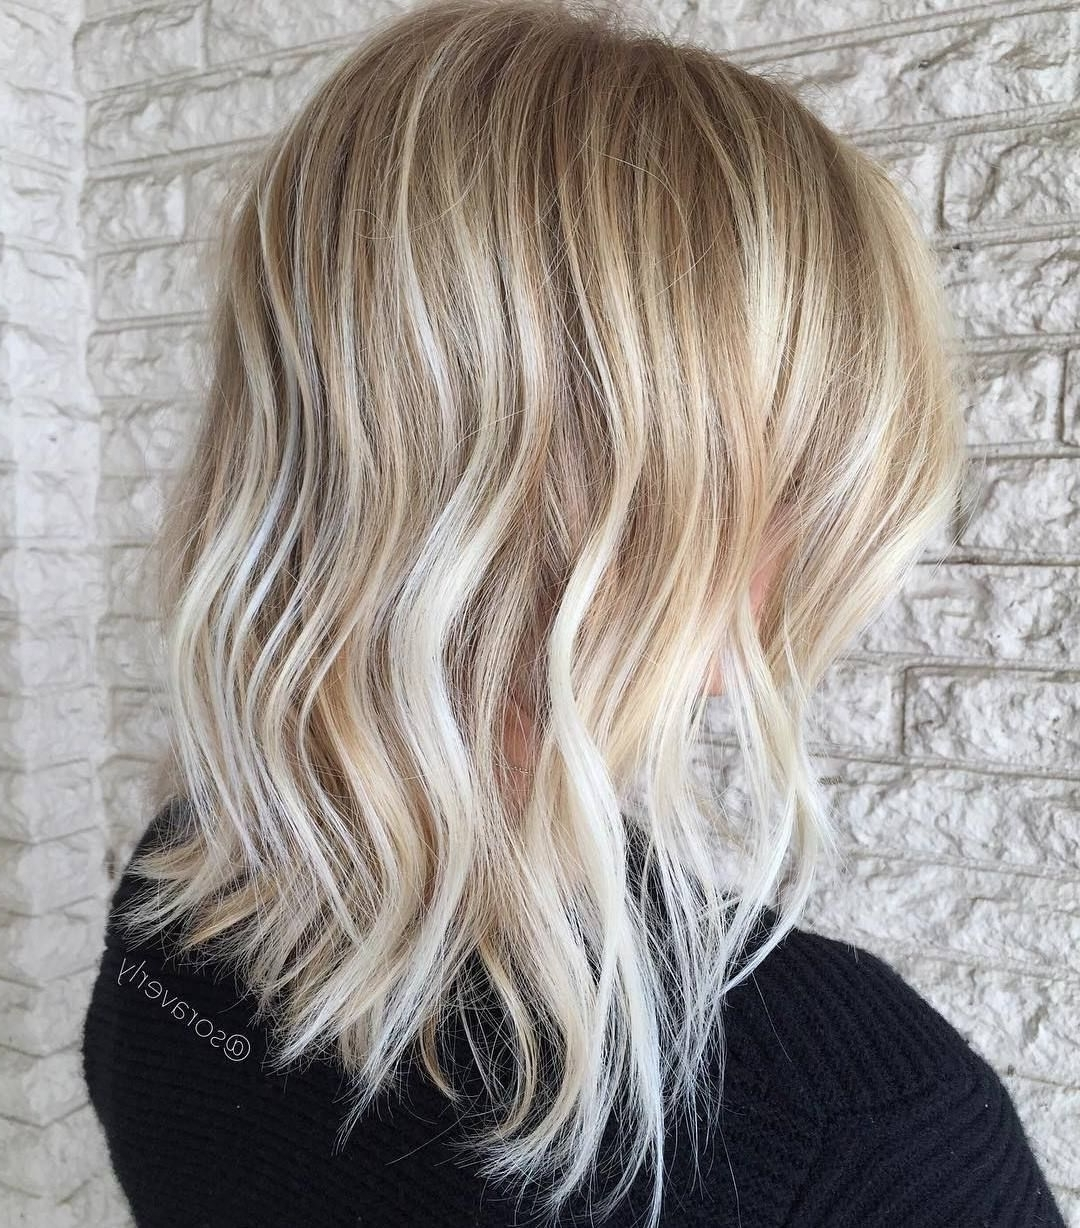 Pin On Ap Hair Medium Length Blonde Hairstyles Straight